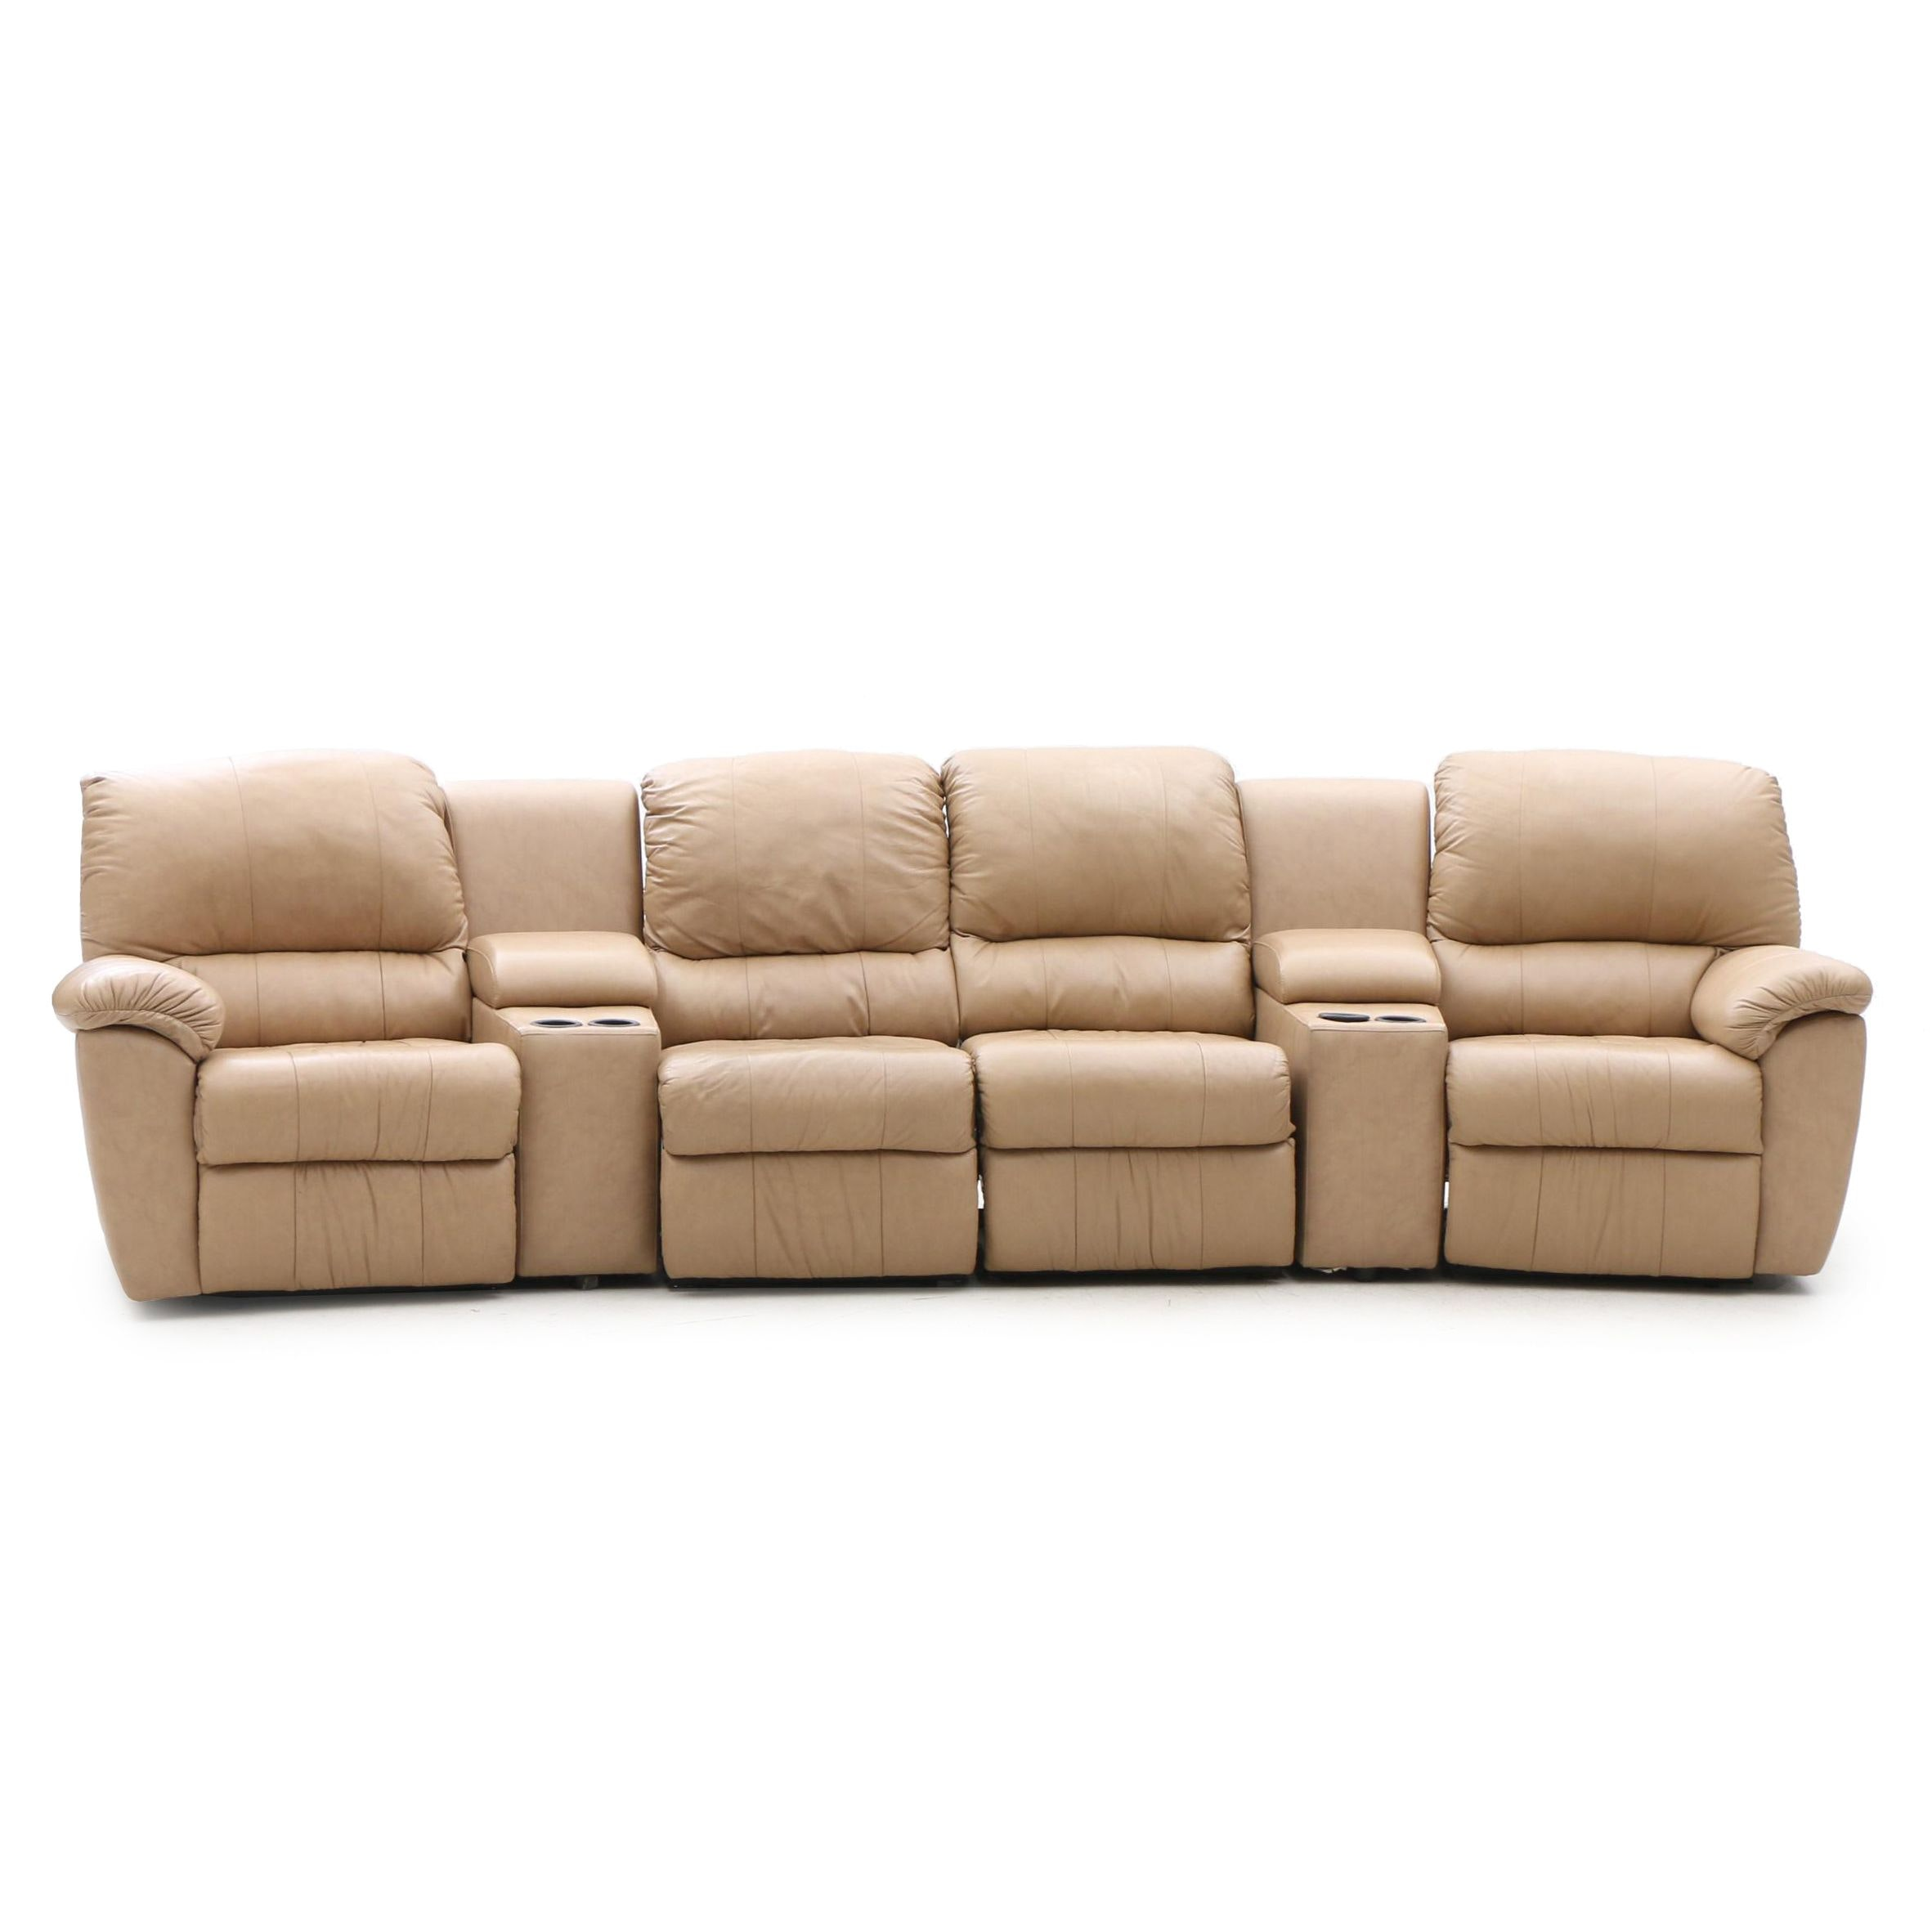 "Contemporary ""Move in Style"" Sectional Sofa by Palliser"